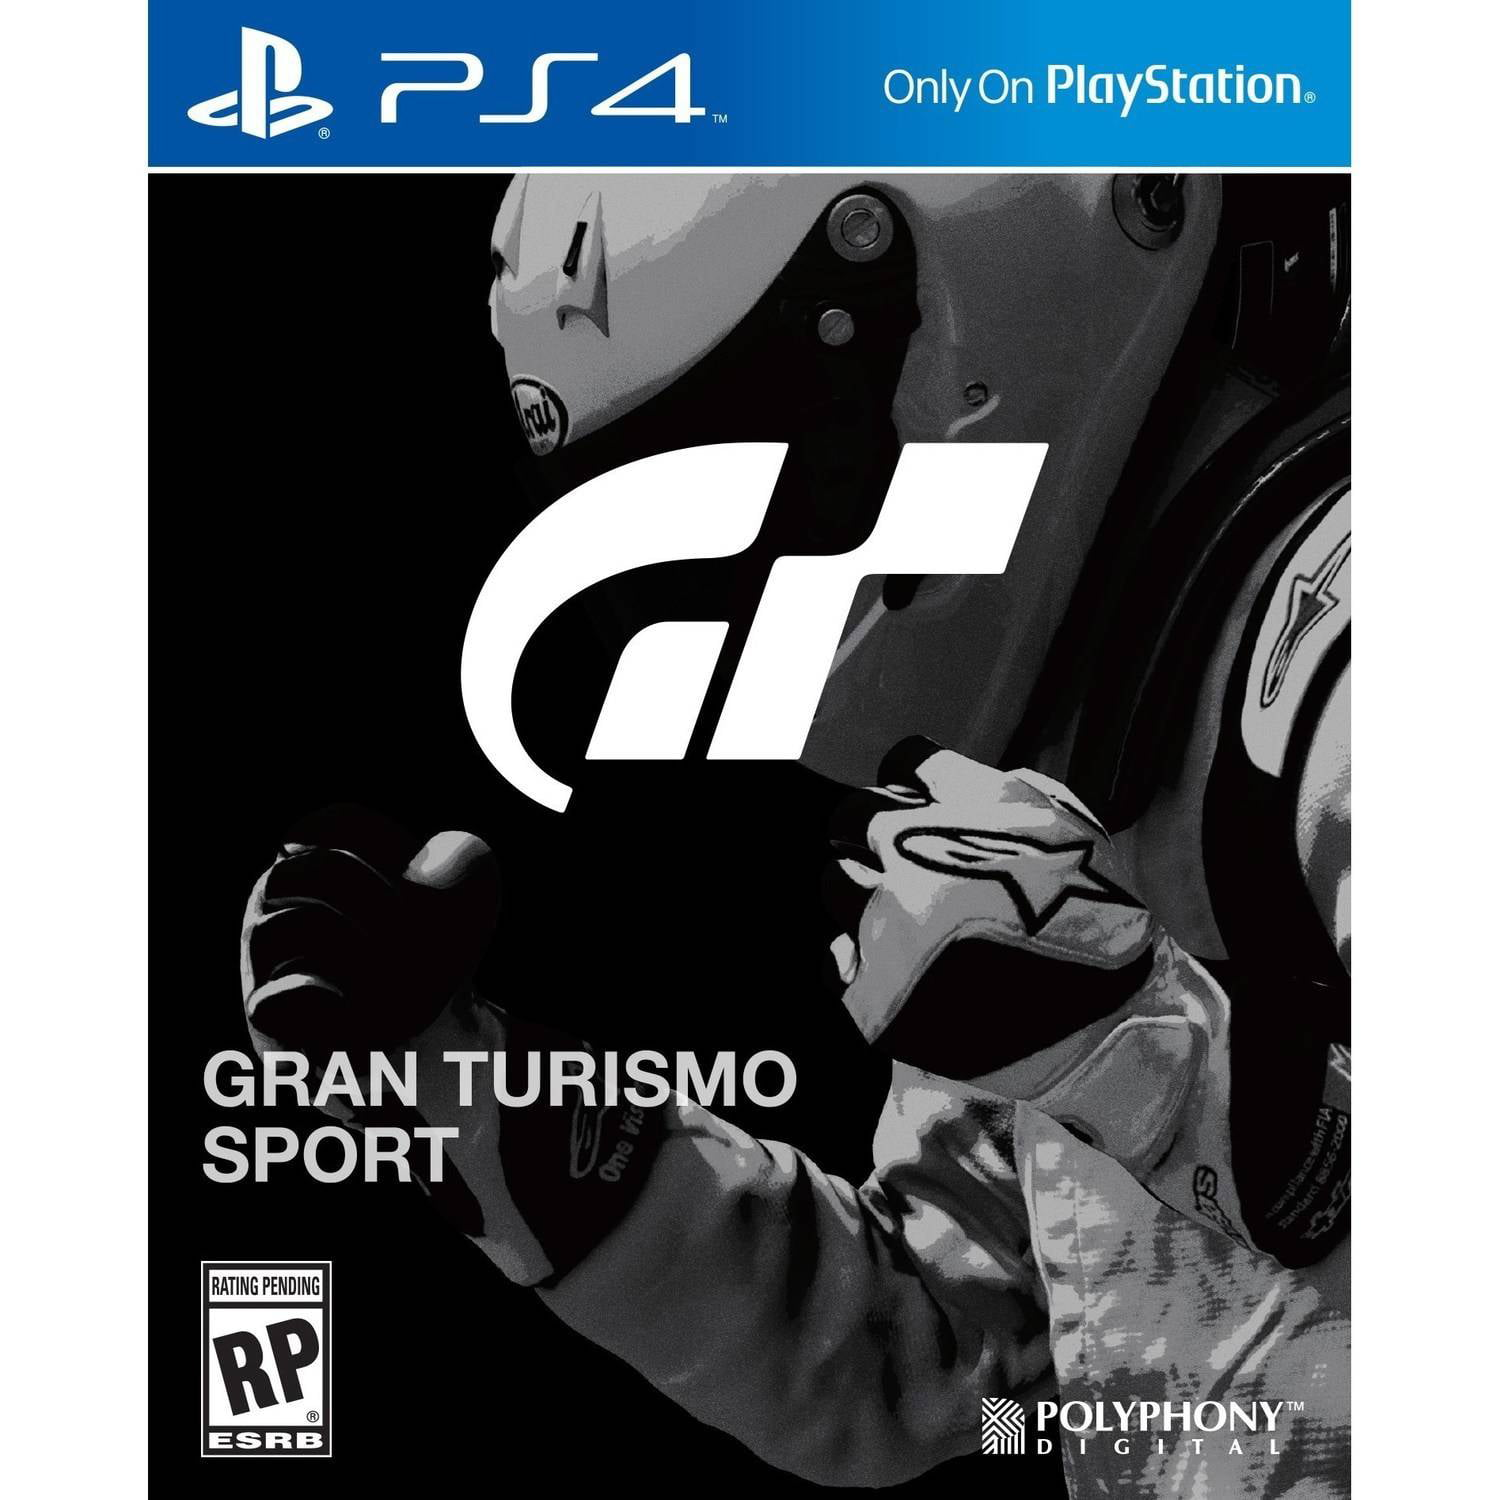 Gran Turismo Sport (Playstation 4) by Polyphony Digital